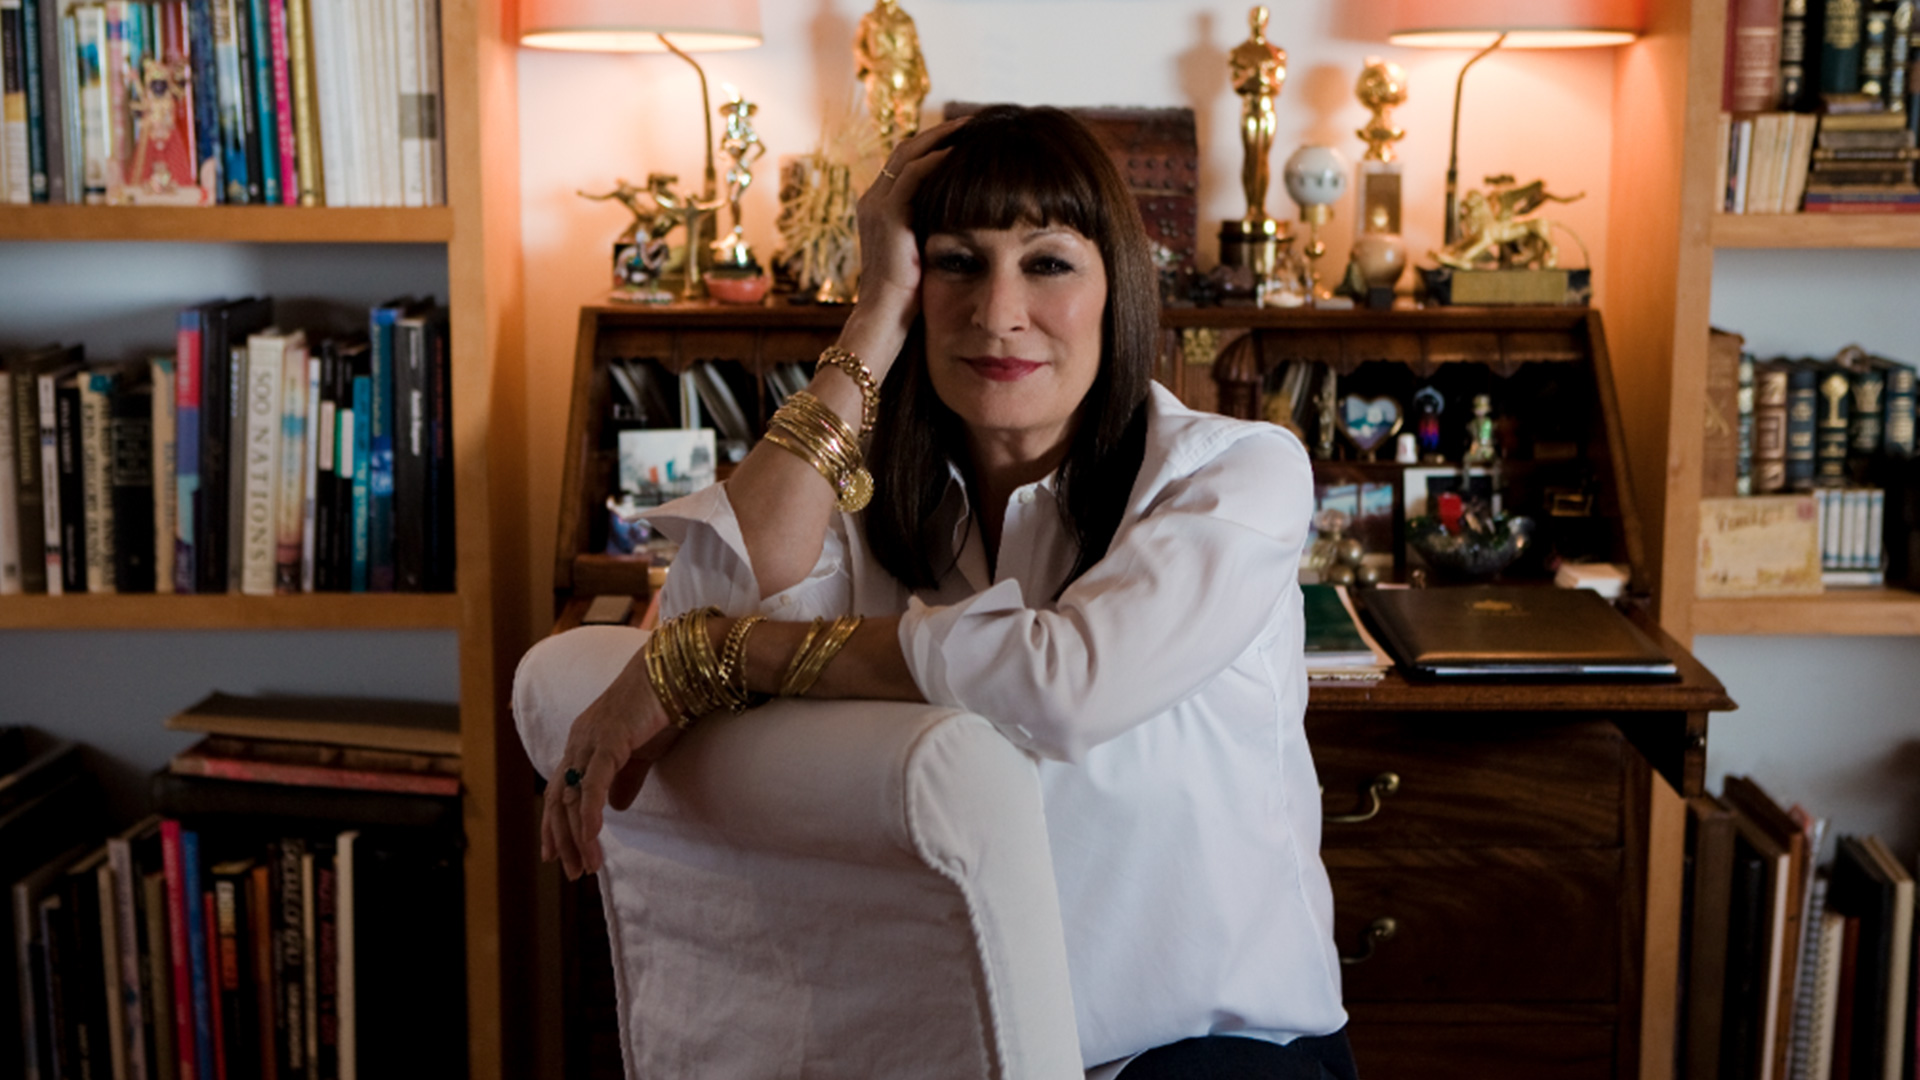 Anjelica Huston Is As Depressed About The Treatment Of Women As You Are